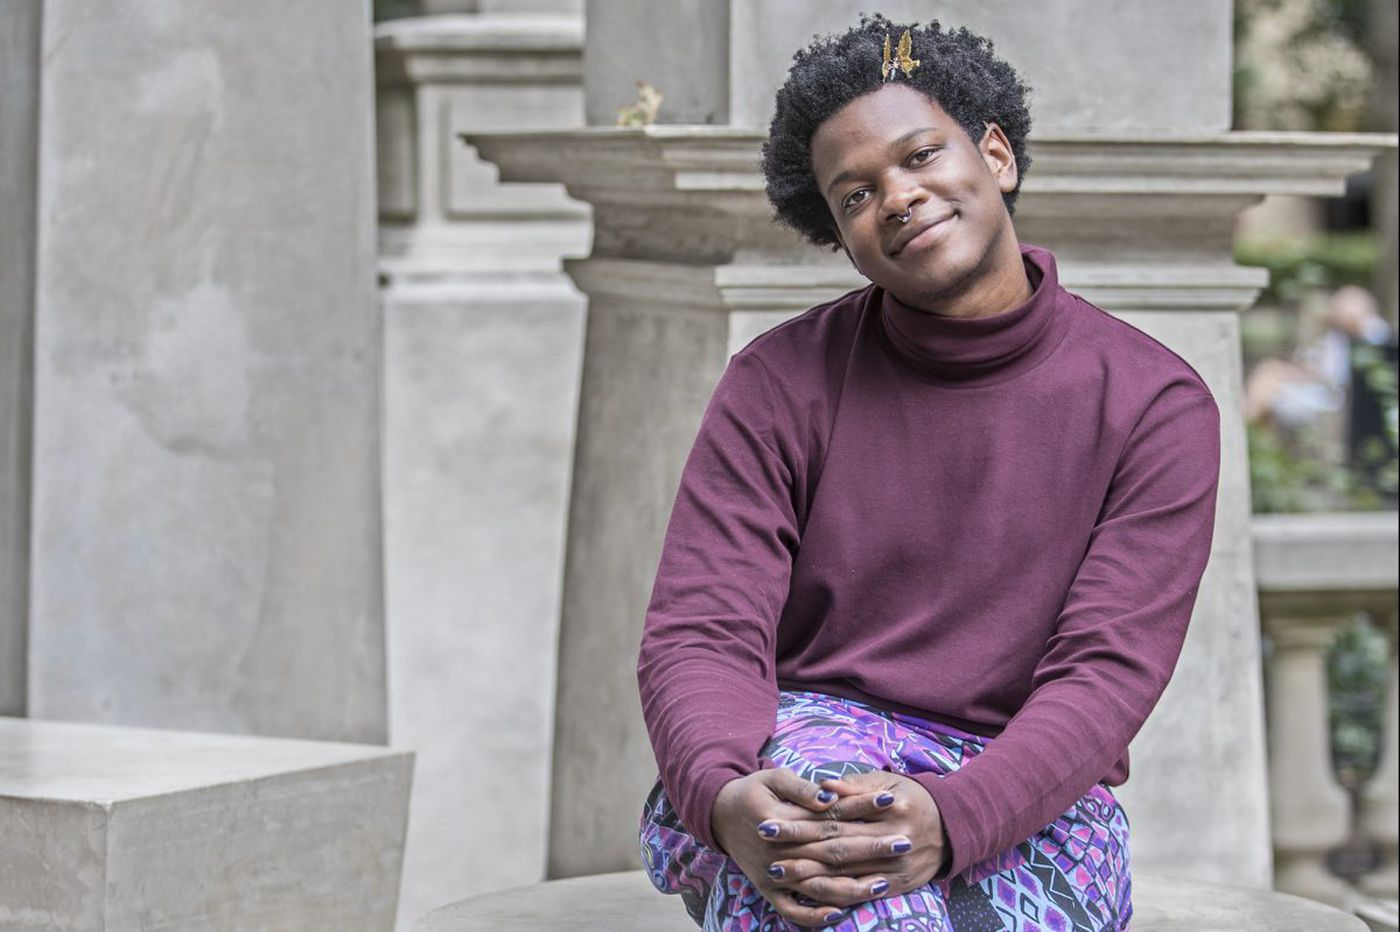 Shamir is Philly's terrifically talented music maker unbound by genre or gender